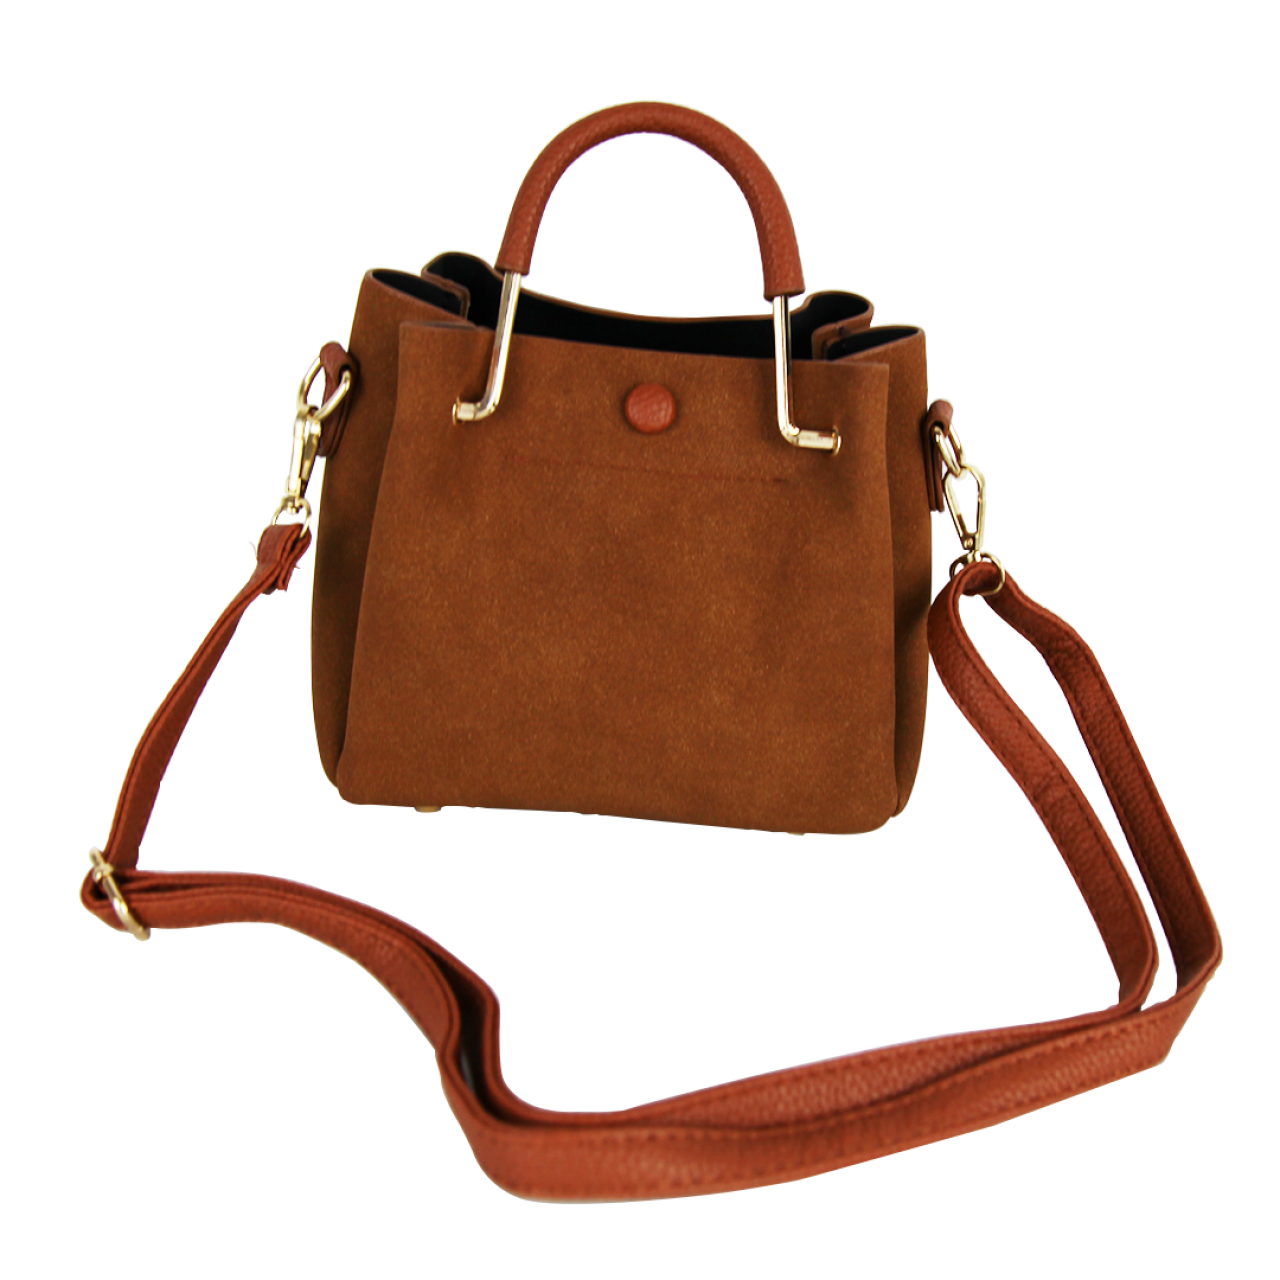 Casual Tote Brown/Blue 2 Pieces Bag Set